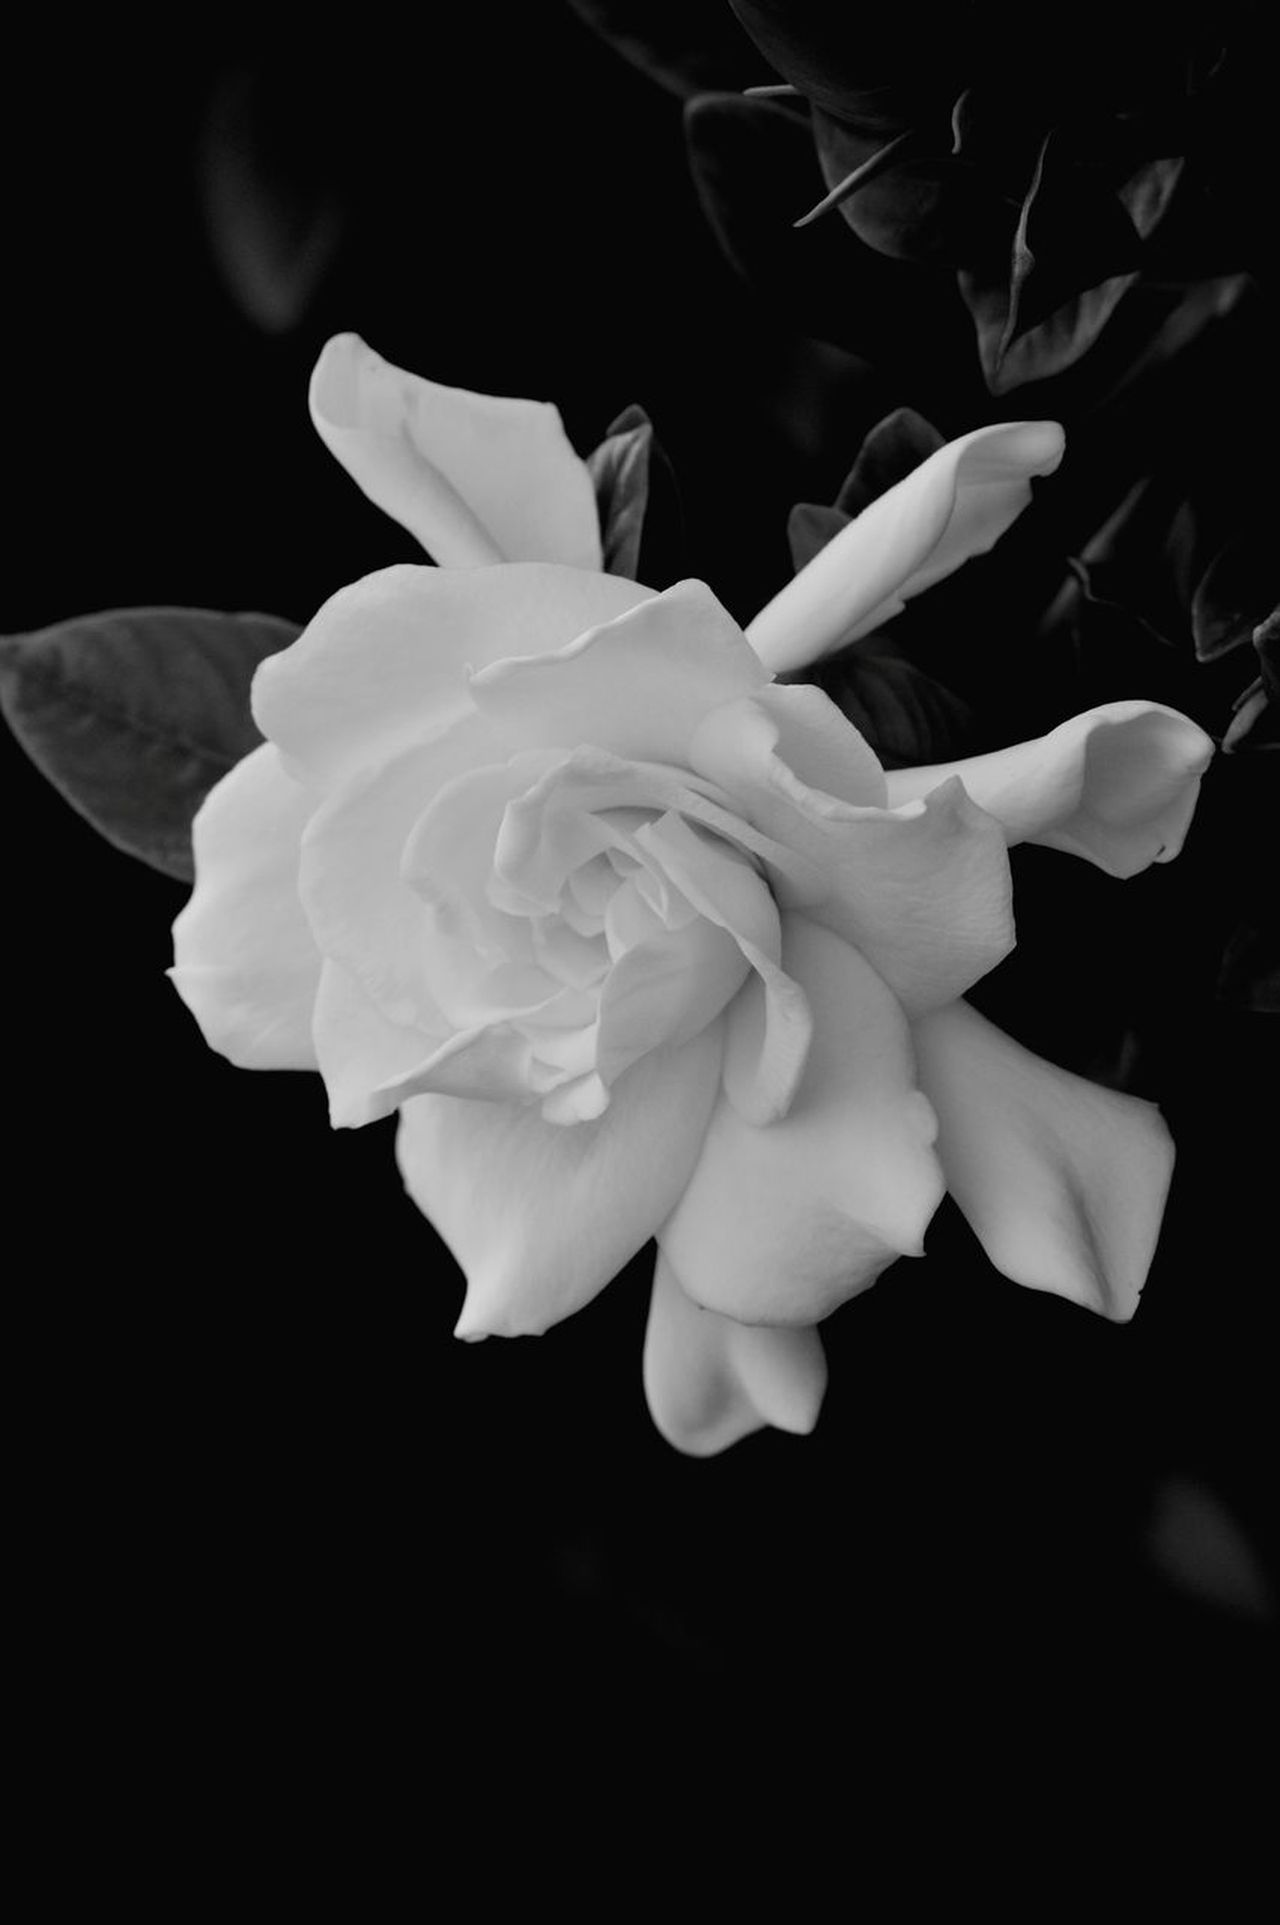 Flower Petal Plant Flower Head Nature Close-up Leaf Beauty In Nature No People Growth Fragility Outdoors Day Gardenia Black And White Black & White Copyspace